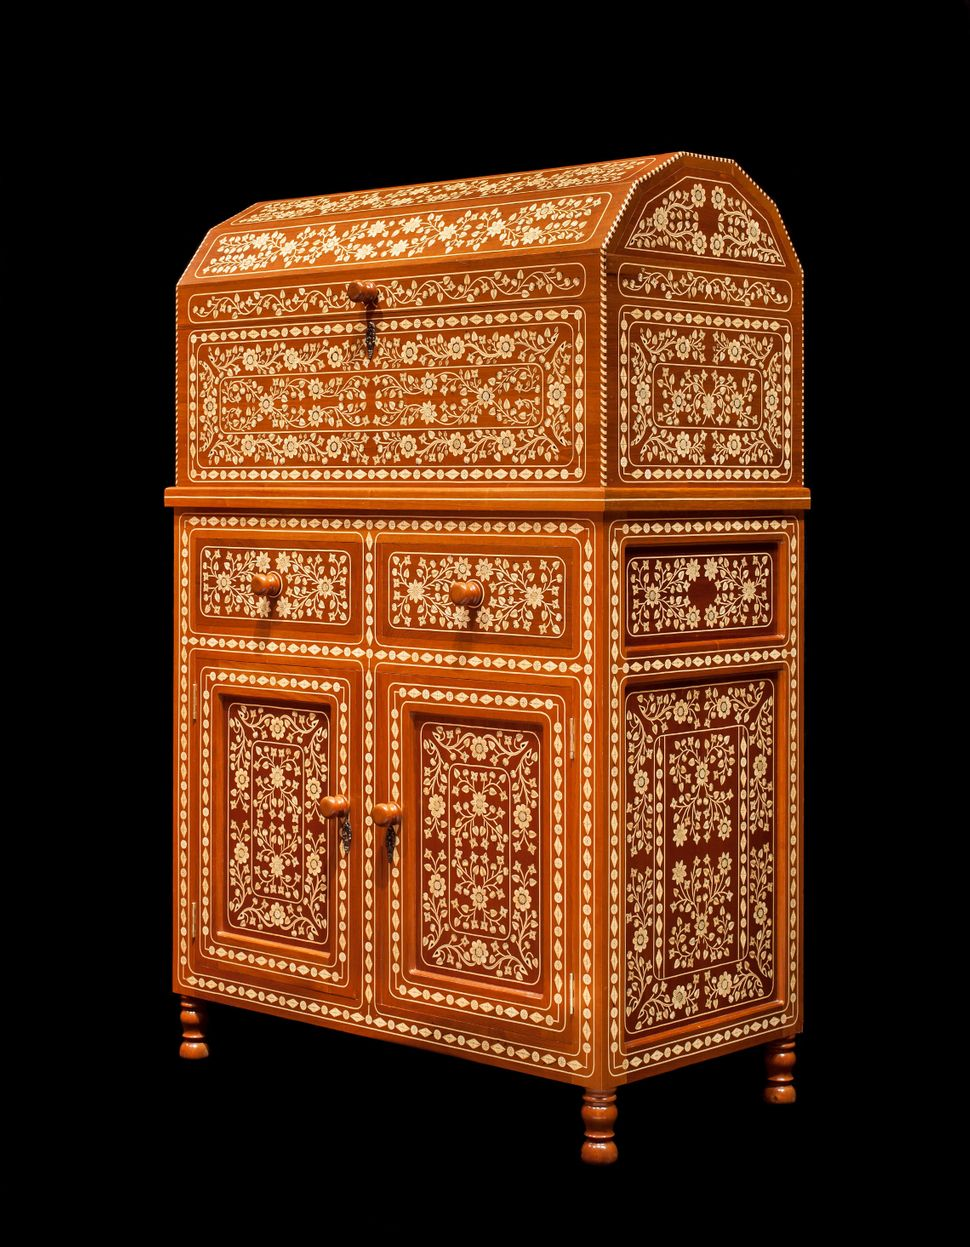 Francisco Aguirre Tejeda Chest on Cabinet, 2000 Carved, assembled and inlaid wood 